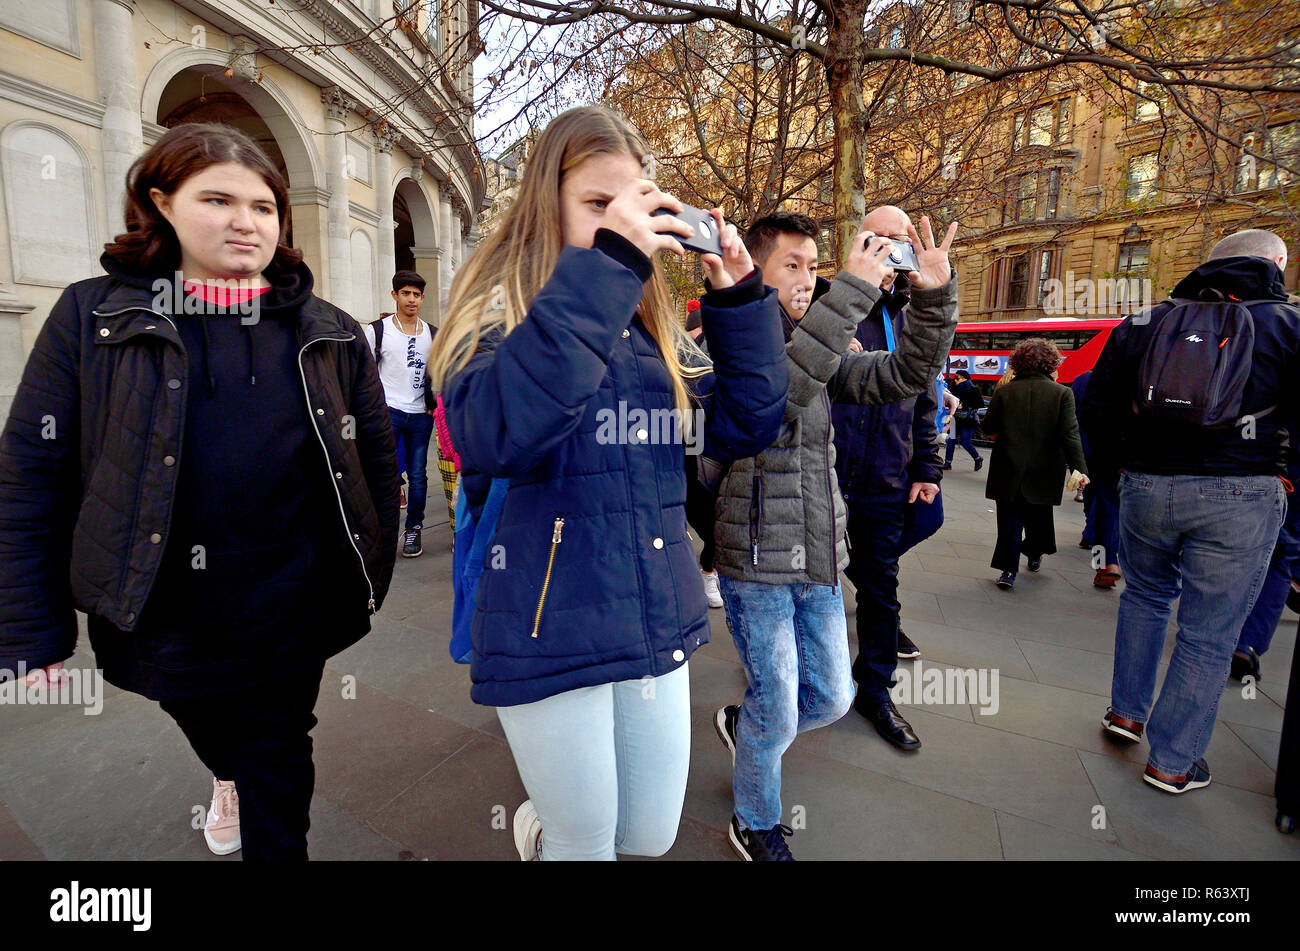 Young tourists filming on their mobile phone whie walking, Trafalgar Square, London, England, UK. - Stock Image